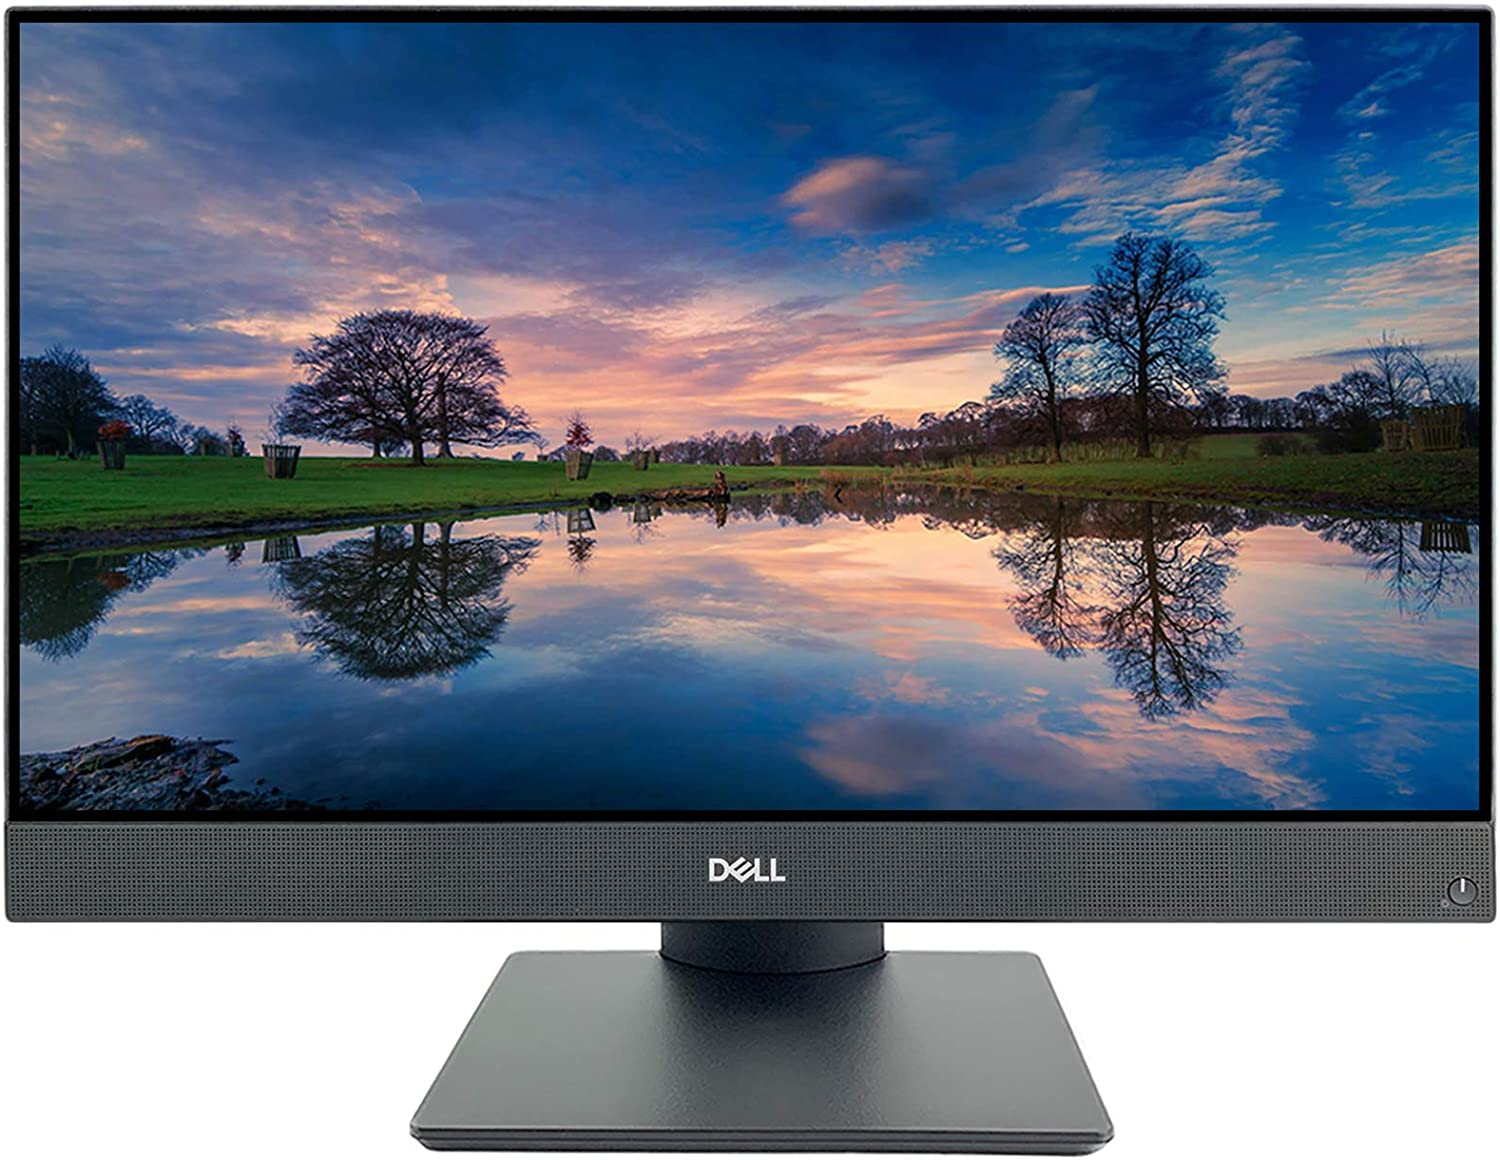 "Dell OptiPlex 24 7000 Series 7460 23.8"" Full HD All-in-One Desktop - 8th Gen Intel 6-Core i5-8500 Processor up to 4.10 GHz, 16GB RAM, 512GB SSD + 2TB Hard Drive, Intel UHD Graphics 630, Windows 10 Pro"